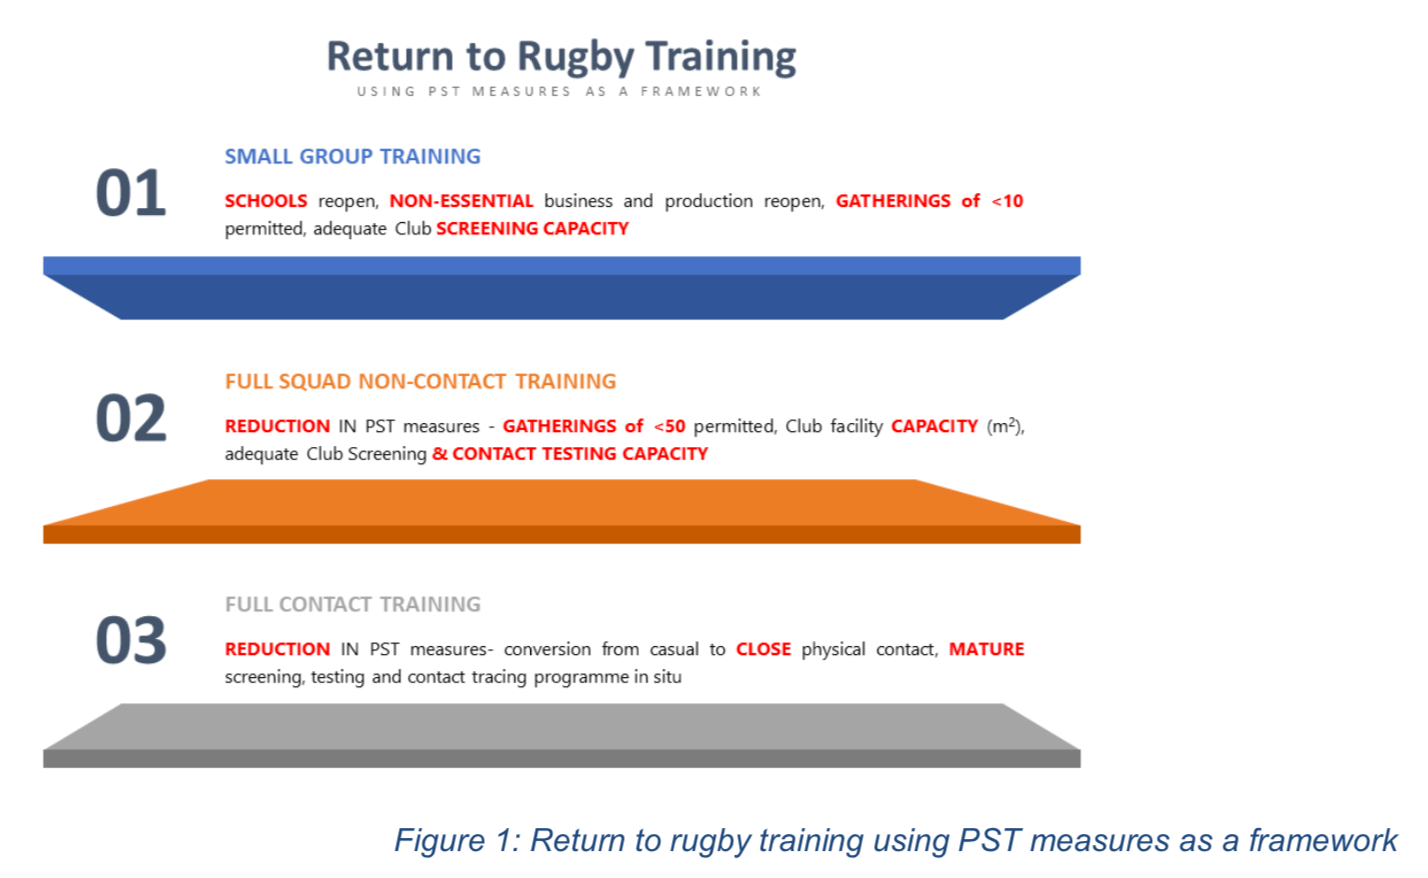 World Rugby publishes COVID-19 return to rugby guidelilines